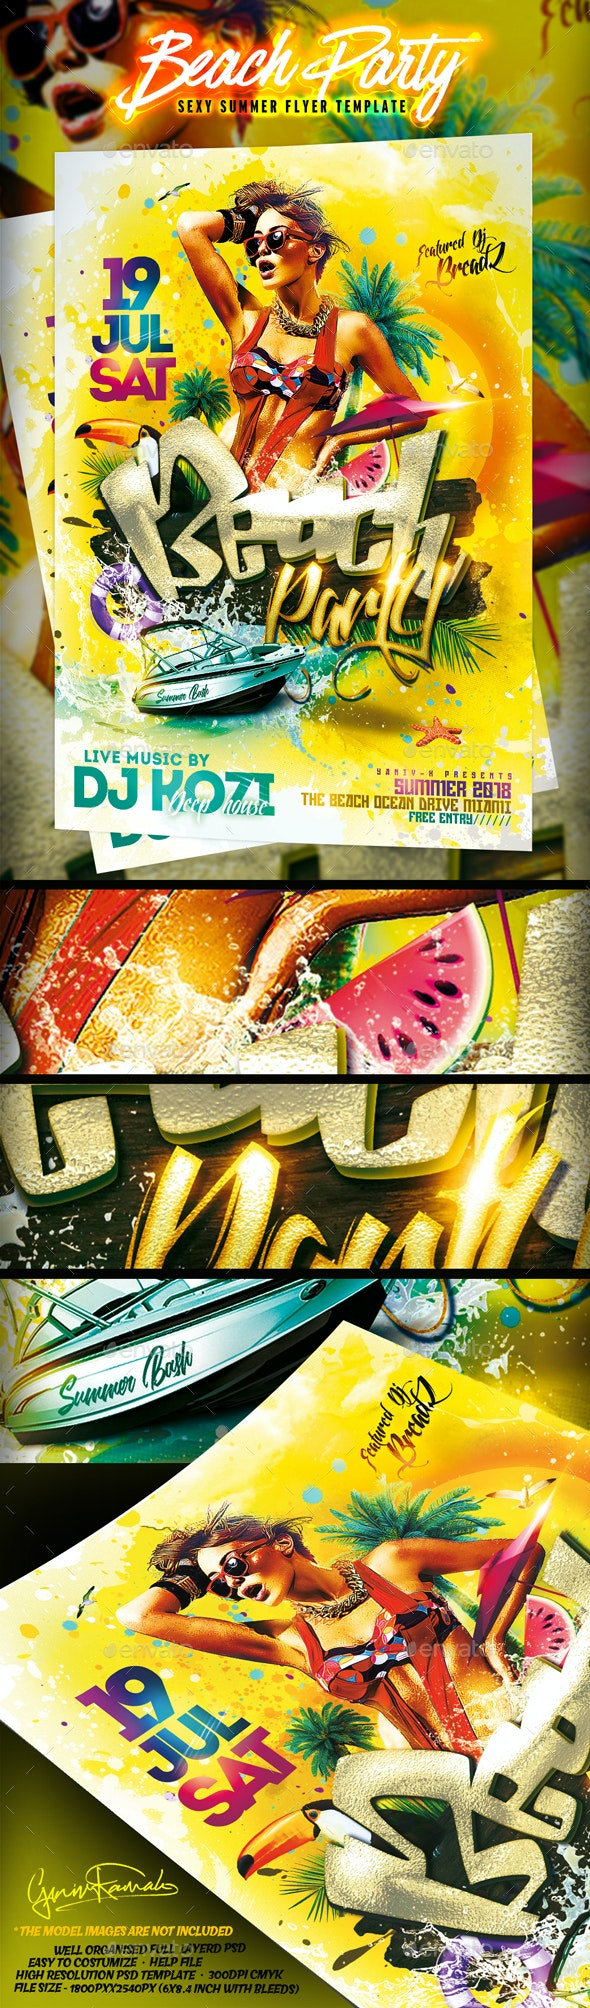 Beach Party v2 Flyer - Events Flyers